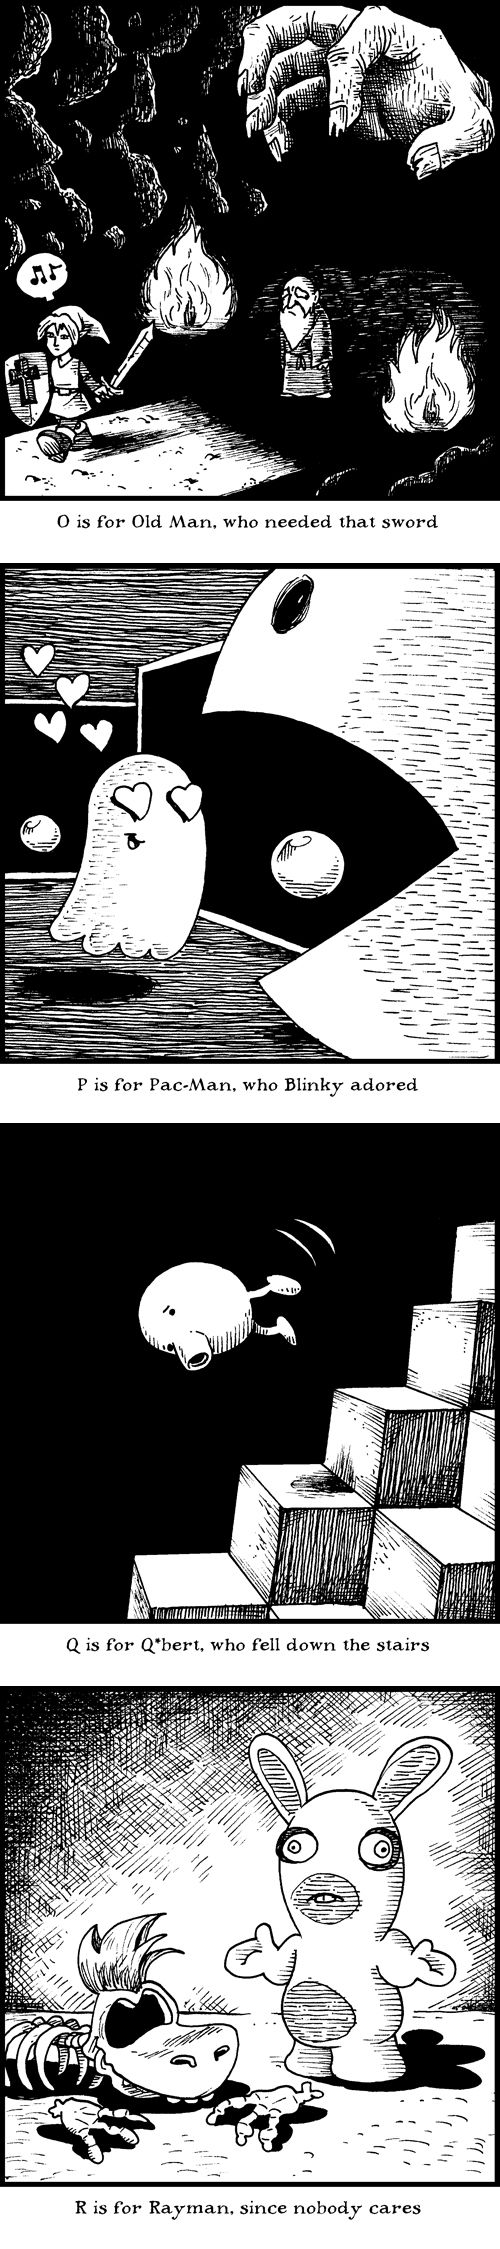 Even more 'Game Overs' in storybook rhyme photo gallery-Edward Gorey Influenced